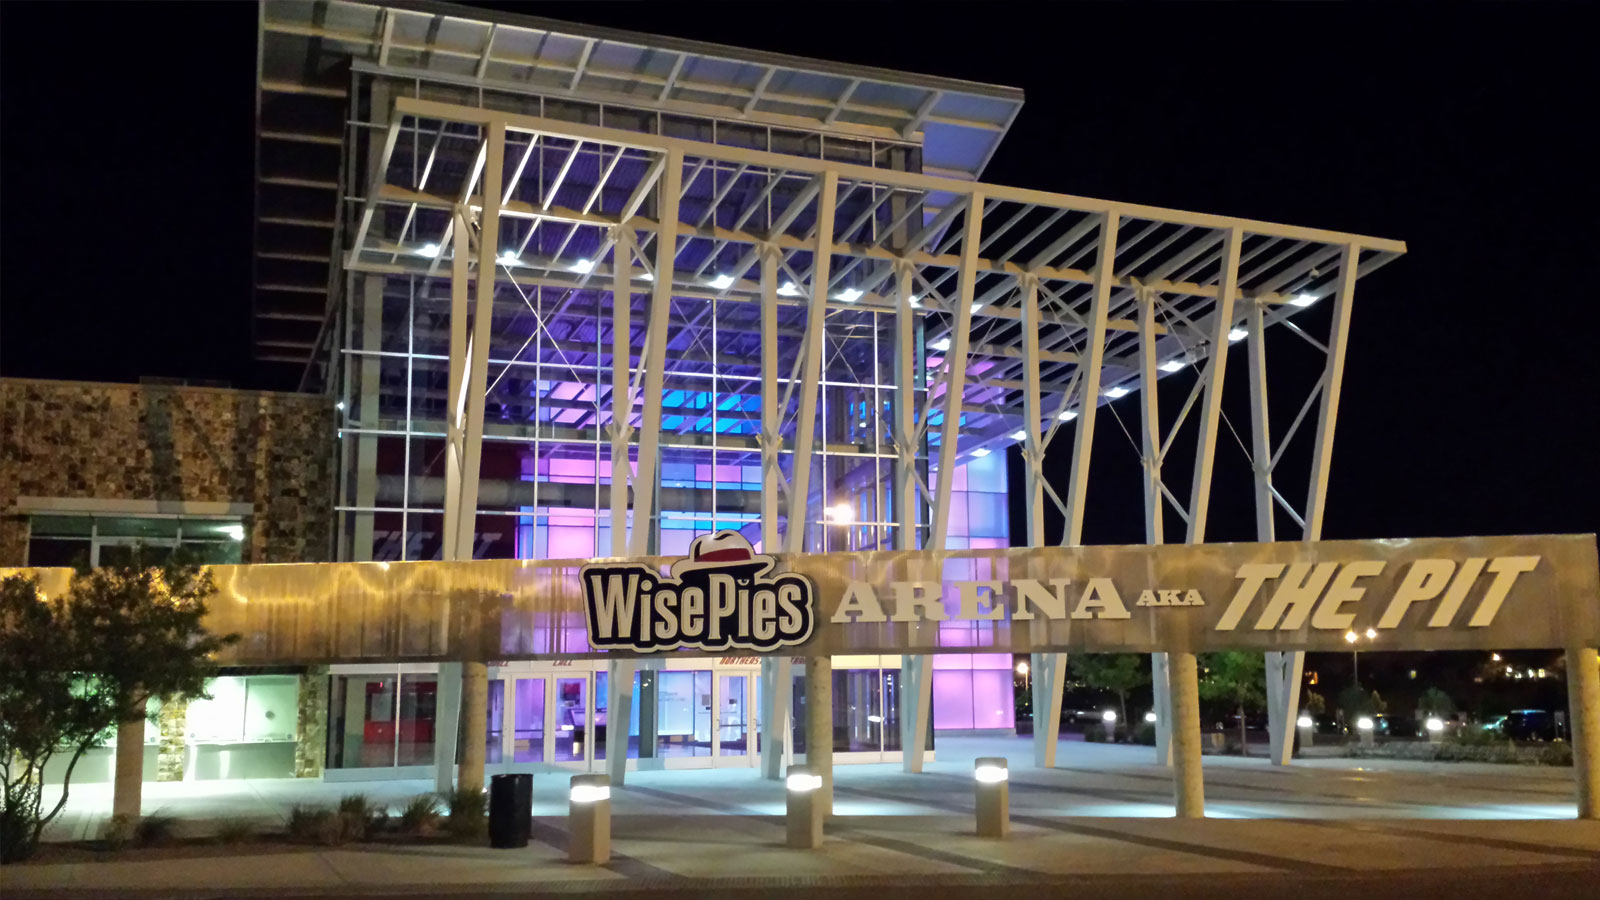 WisePies Arena - The Pit celebrates 50th anniversary